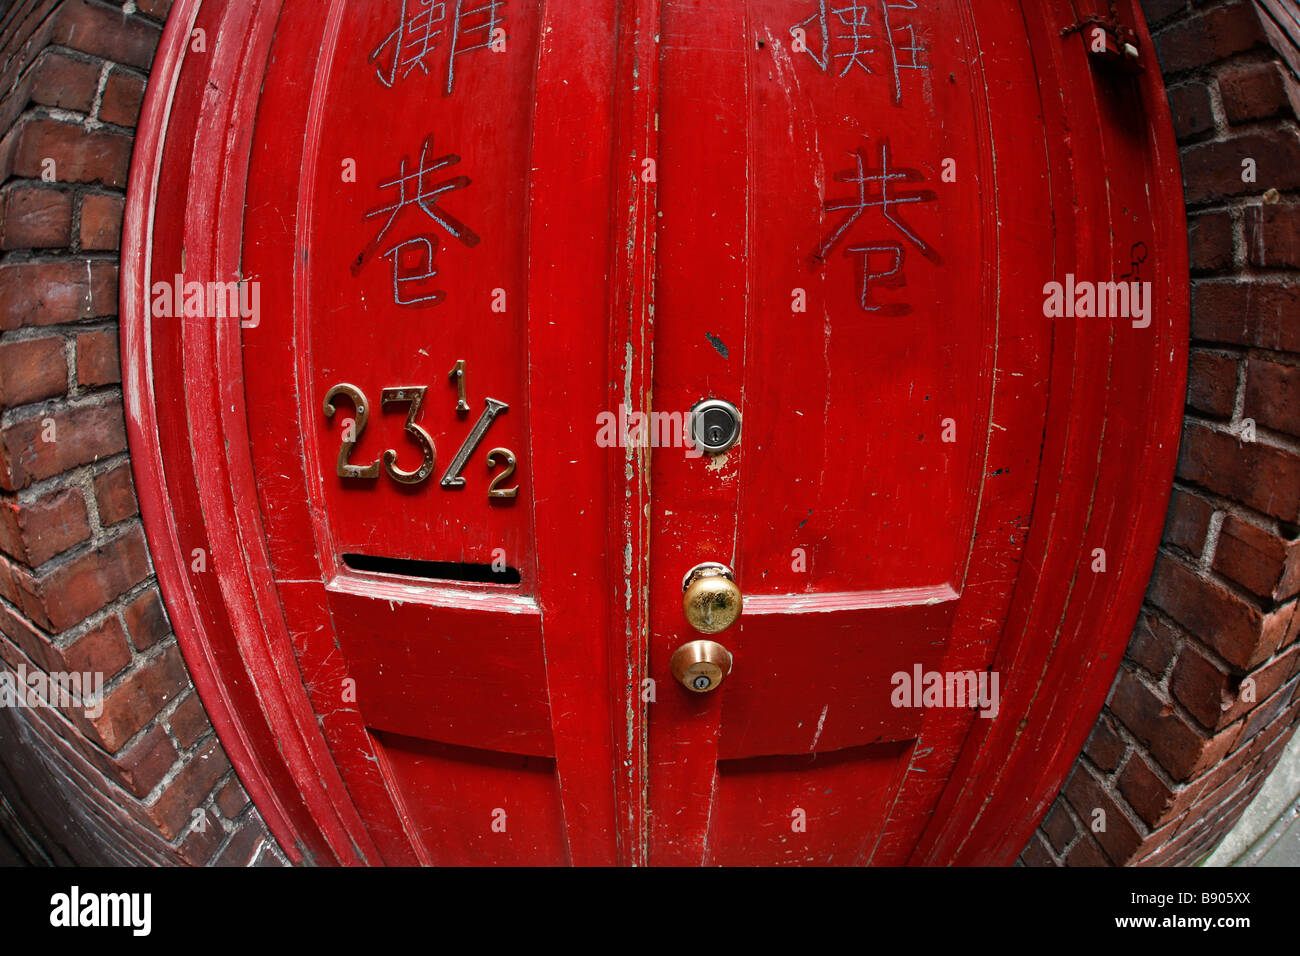 A door with an interesting address in Fan Tan Alley in Victoria's Chinatown in British Columbia, Canada. Stock Photo